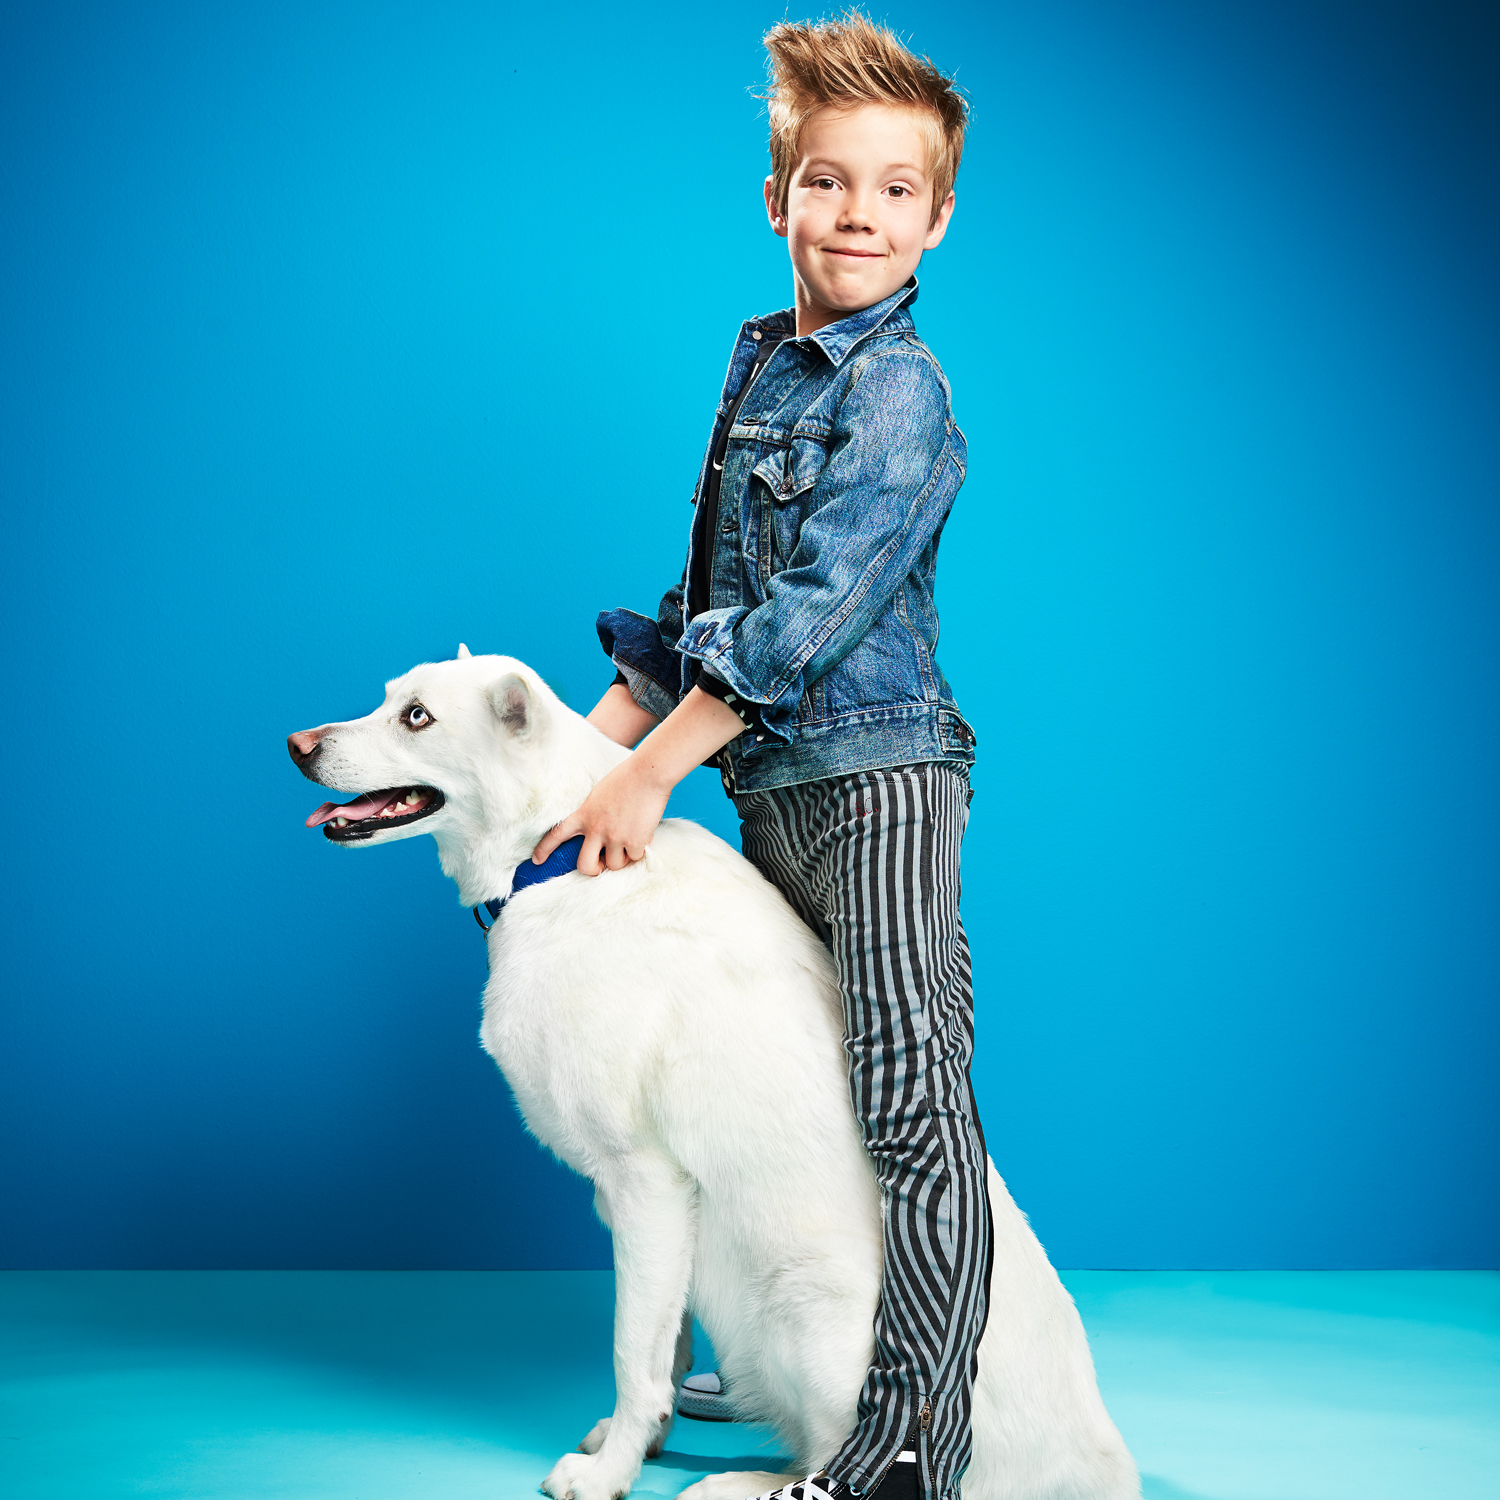 boy wearing denim jacket standing over white alaskan husky